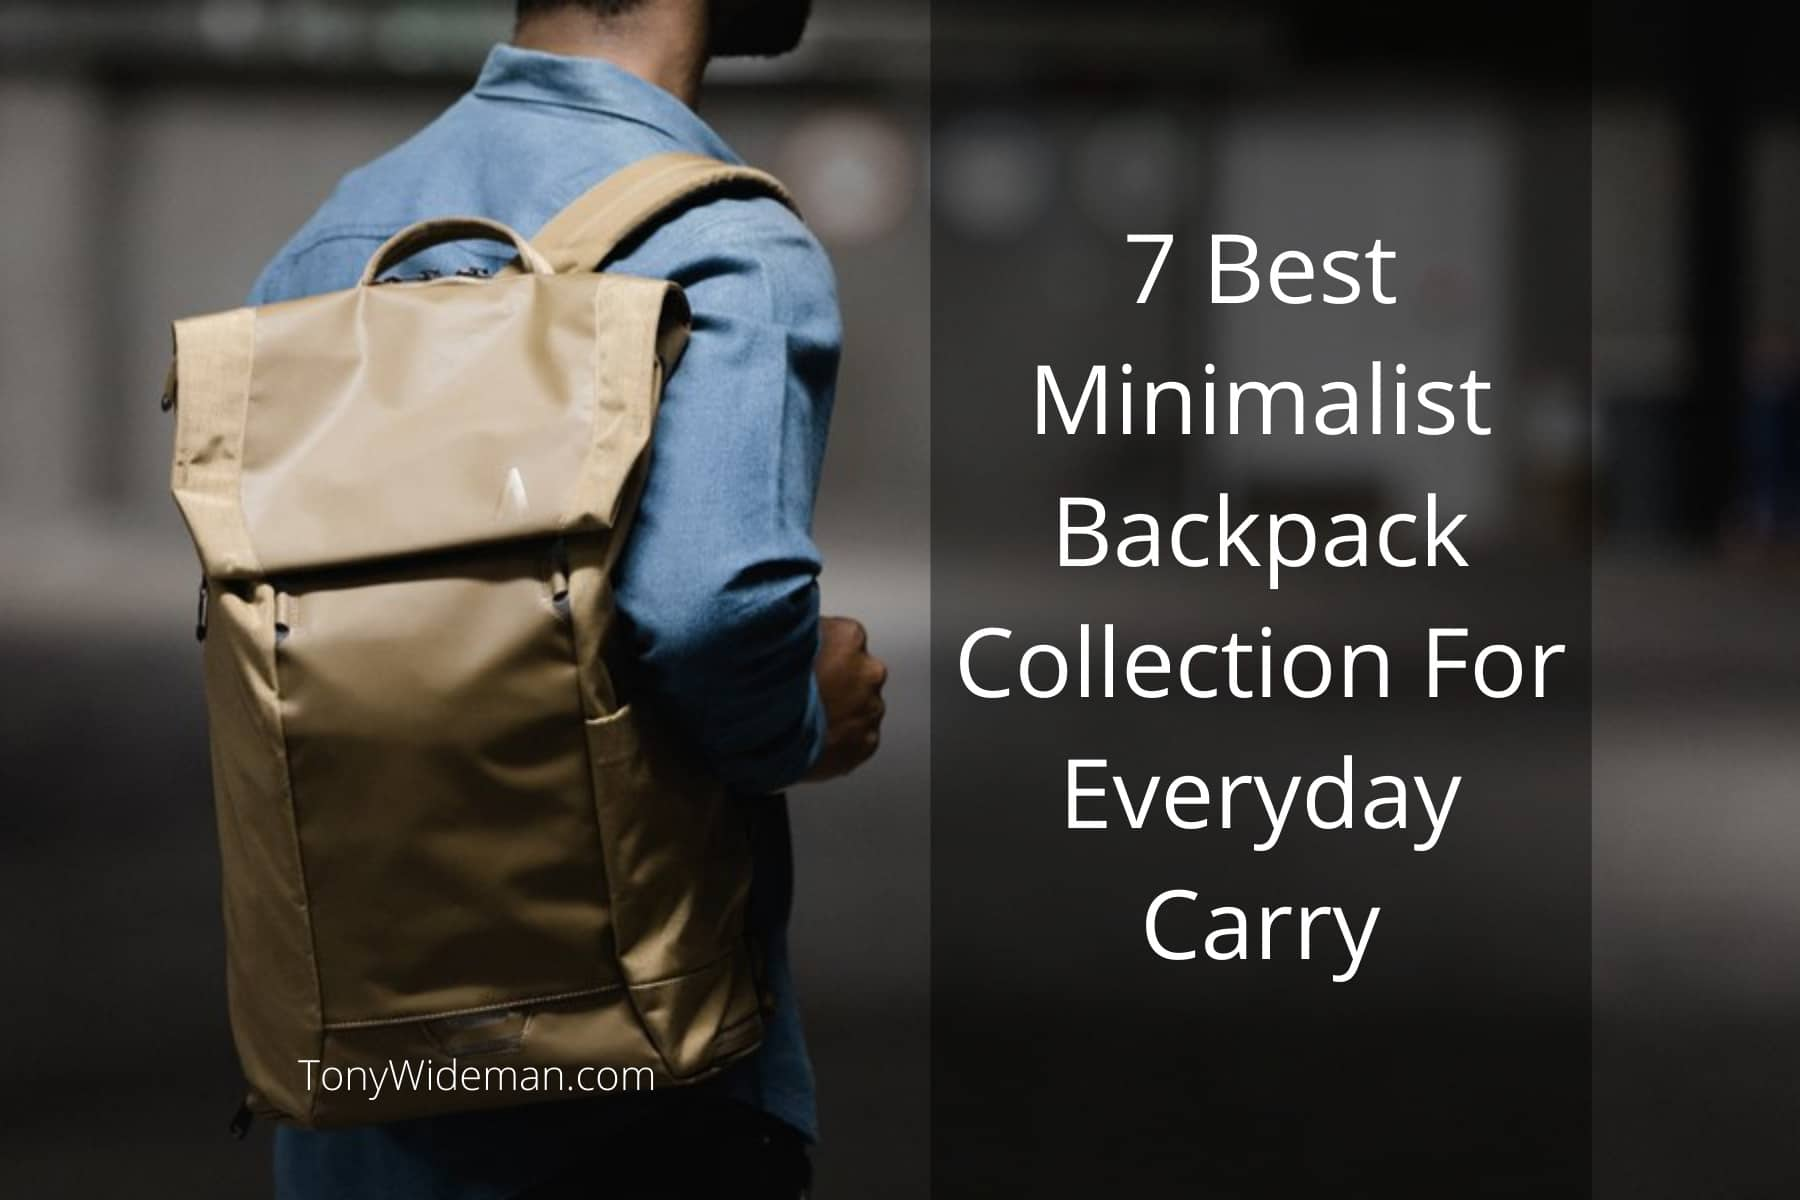 7 Best Minimalist Backpack Collection For Everyday Carry